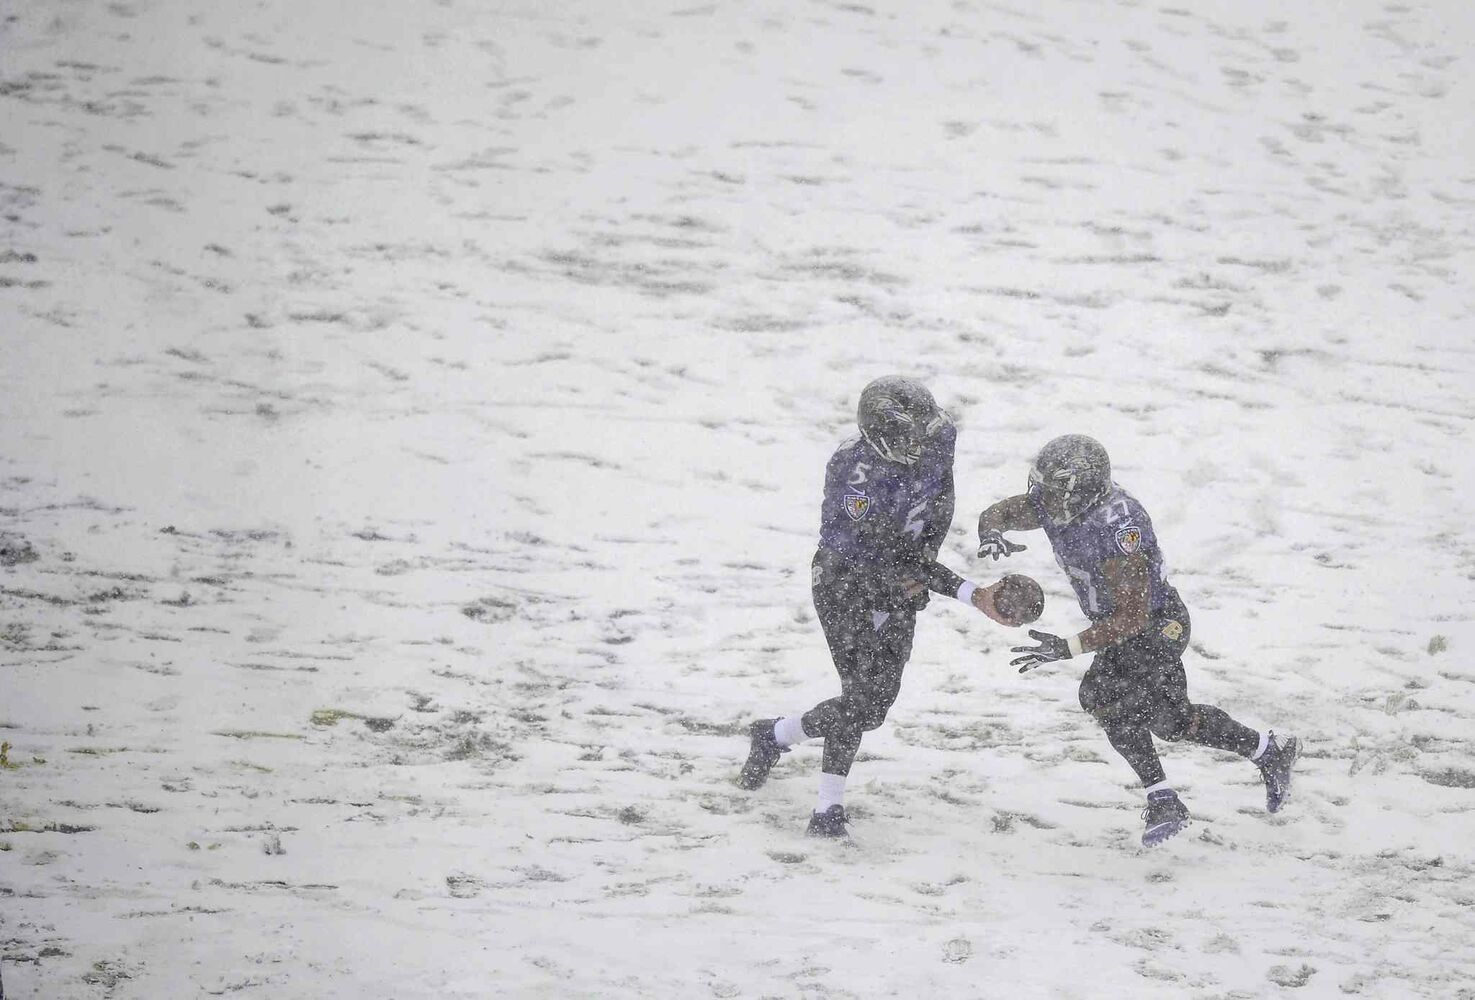 Baltimore Ravens quarterback Joe Flacco (left) hands the ball off to running back Ray Rice as snow falls in the first half of the game against the Minnesota Vikings.